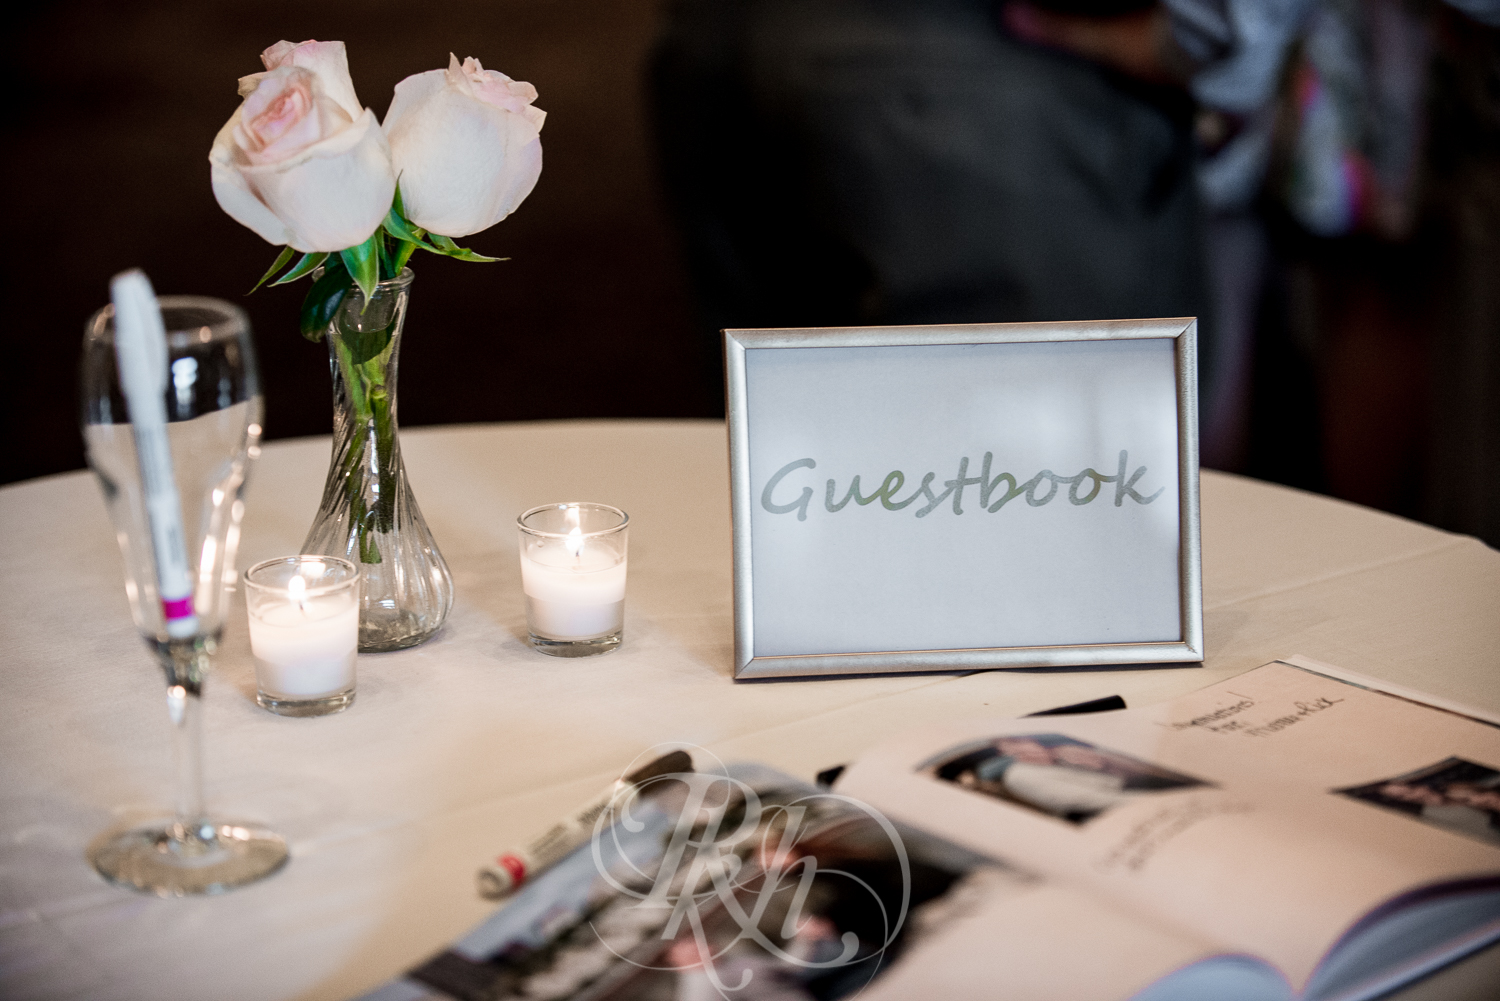 Blog - Whitney & Brent - Minnesota Wedding Photographer - RKH Images - Blog-11.jpg